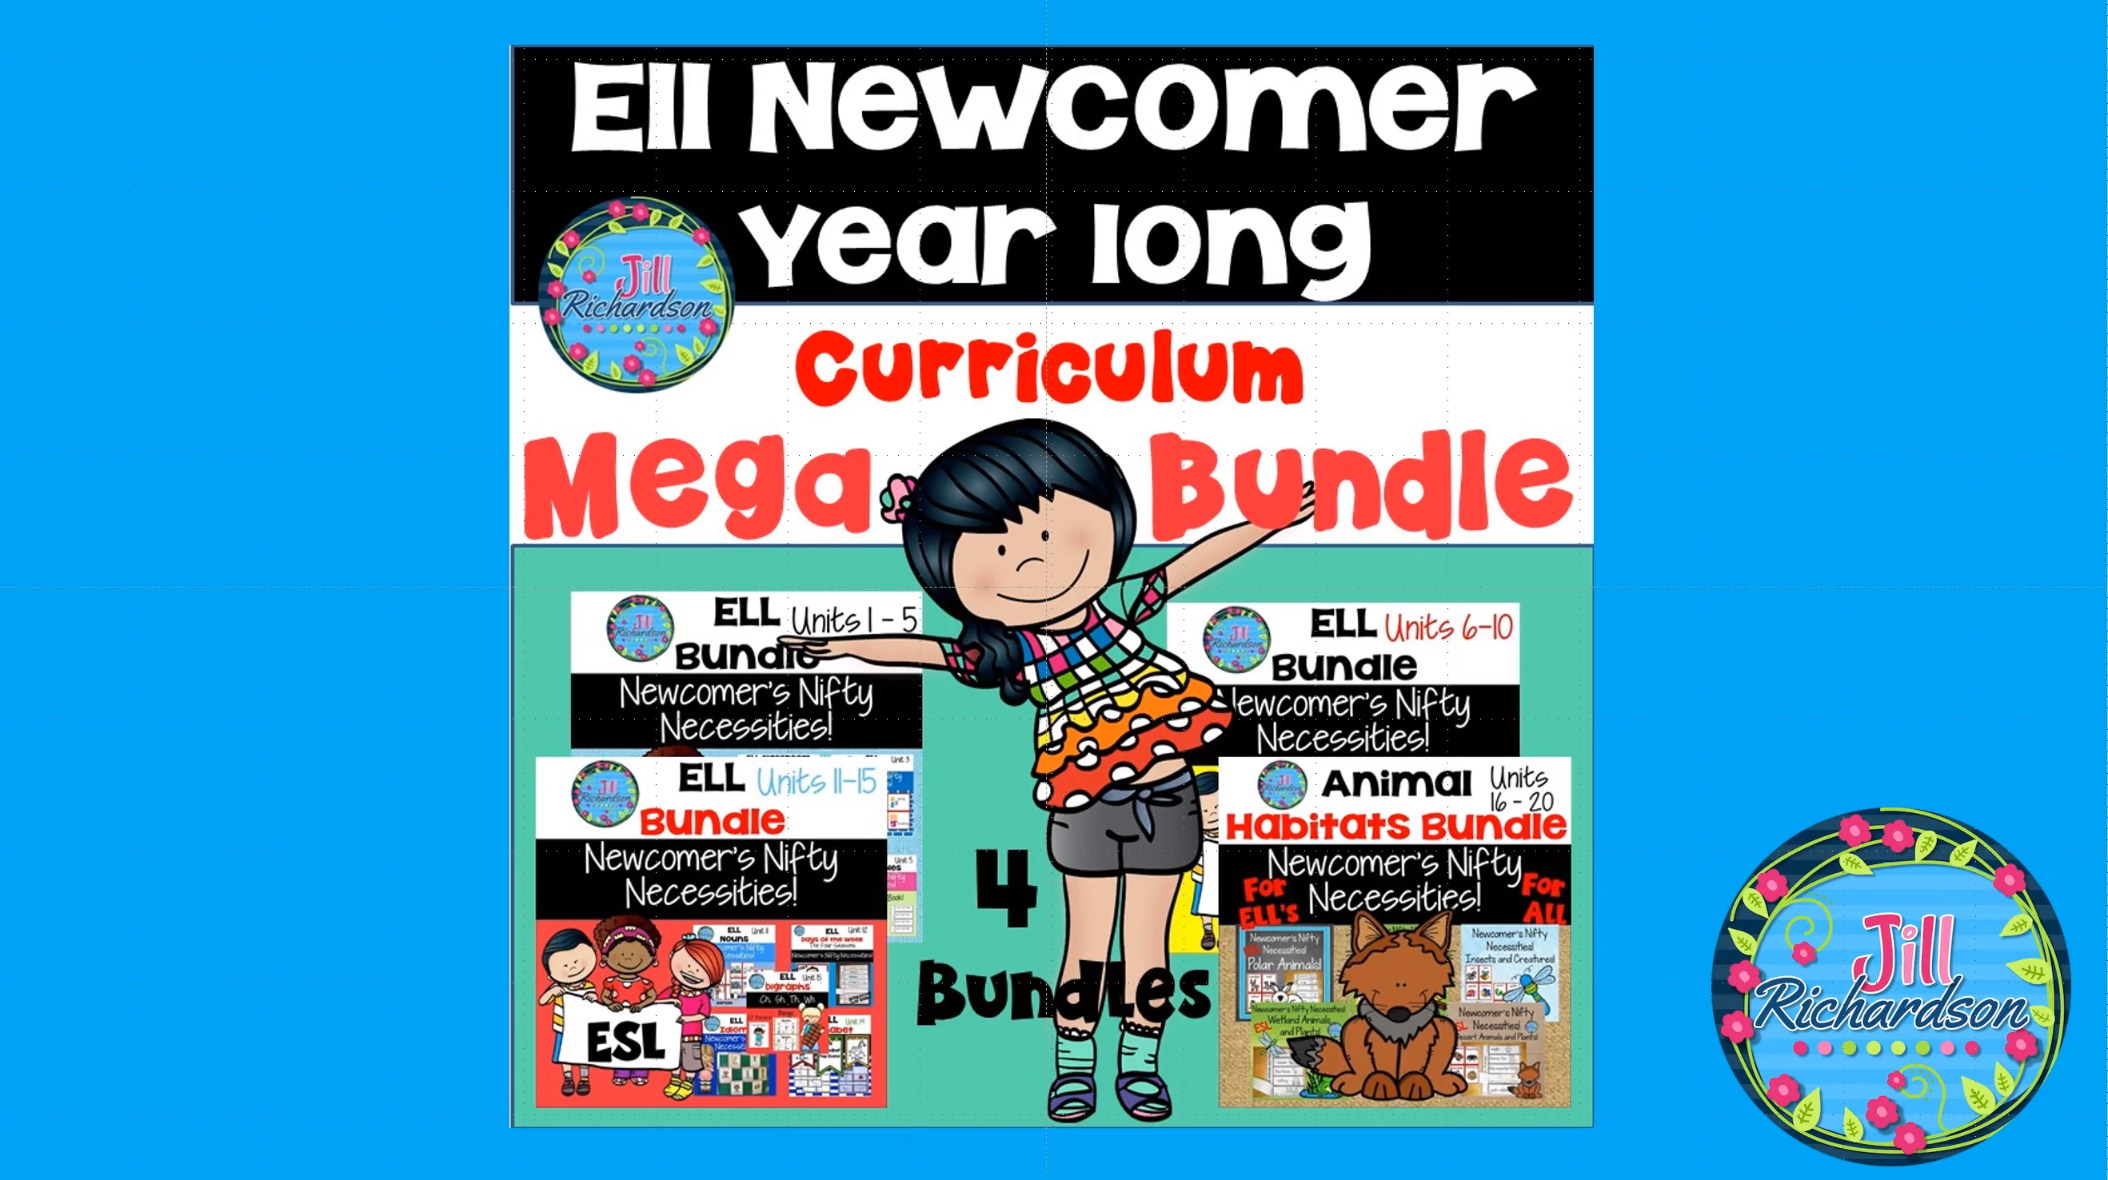 ell newcomer u2019s curriculum  u2013 20 units esl activities mega bundle  do you need help when a new